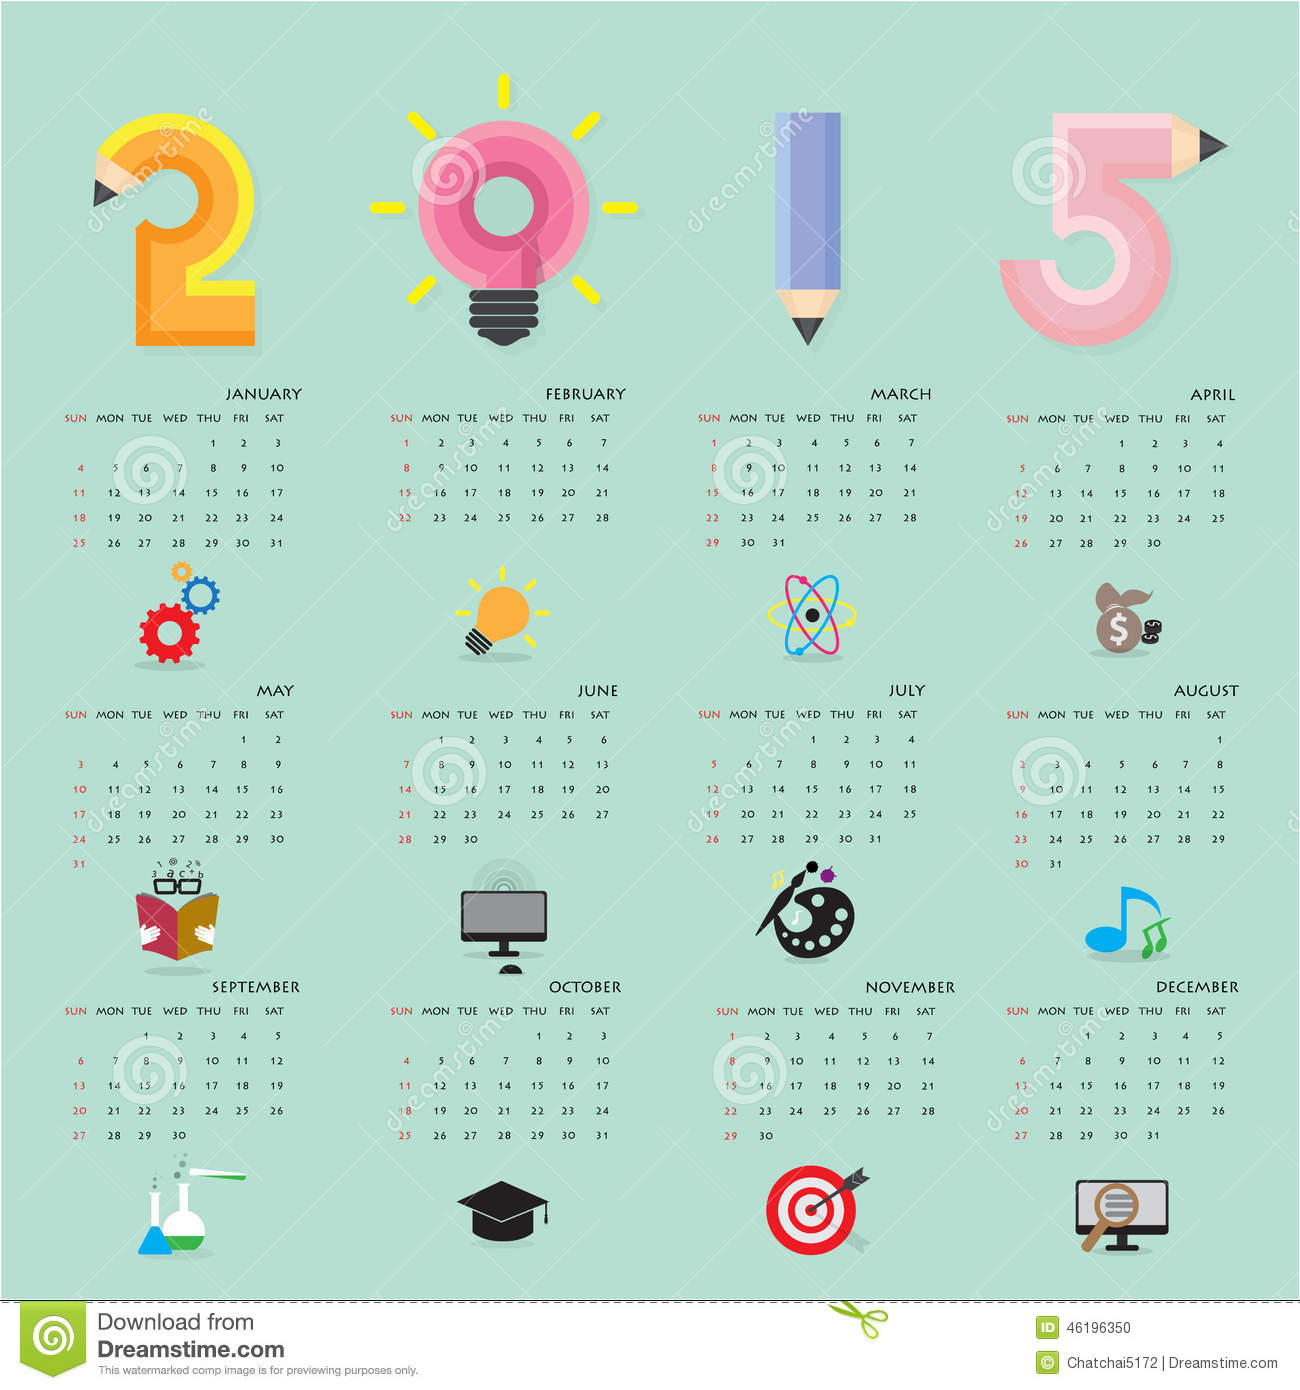 Calendar Template November And December 2015  Creative Calendar 2015 Design Template With Business Or